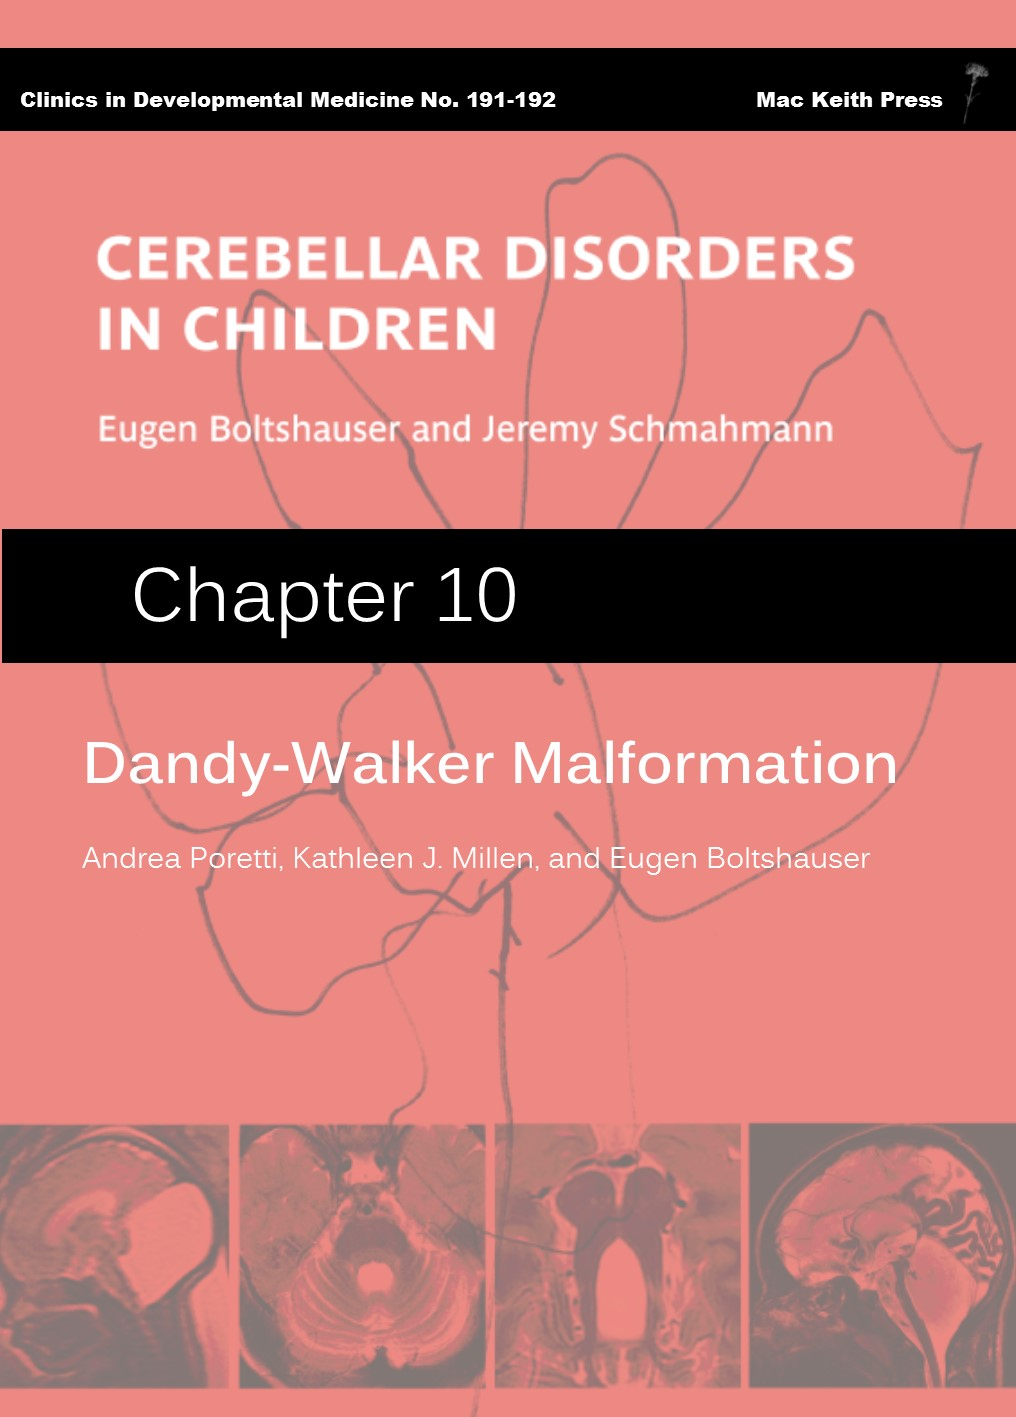 Dandy-Walker Malformation - Cerebellar Disorders in Children (Chapter 10) COVER